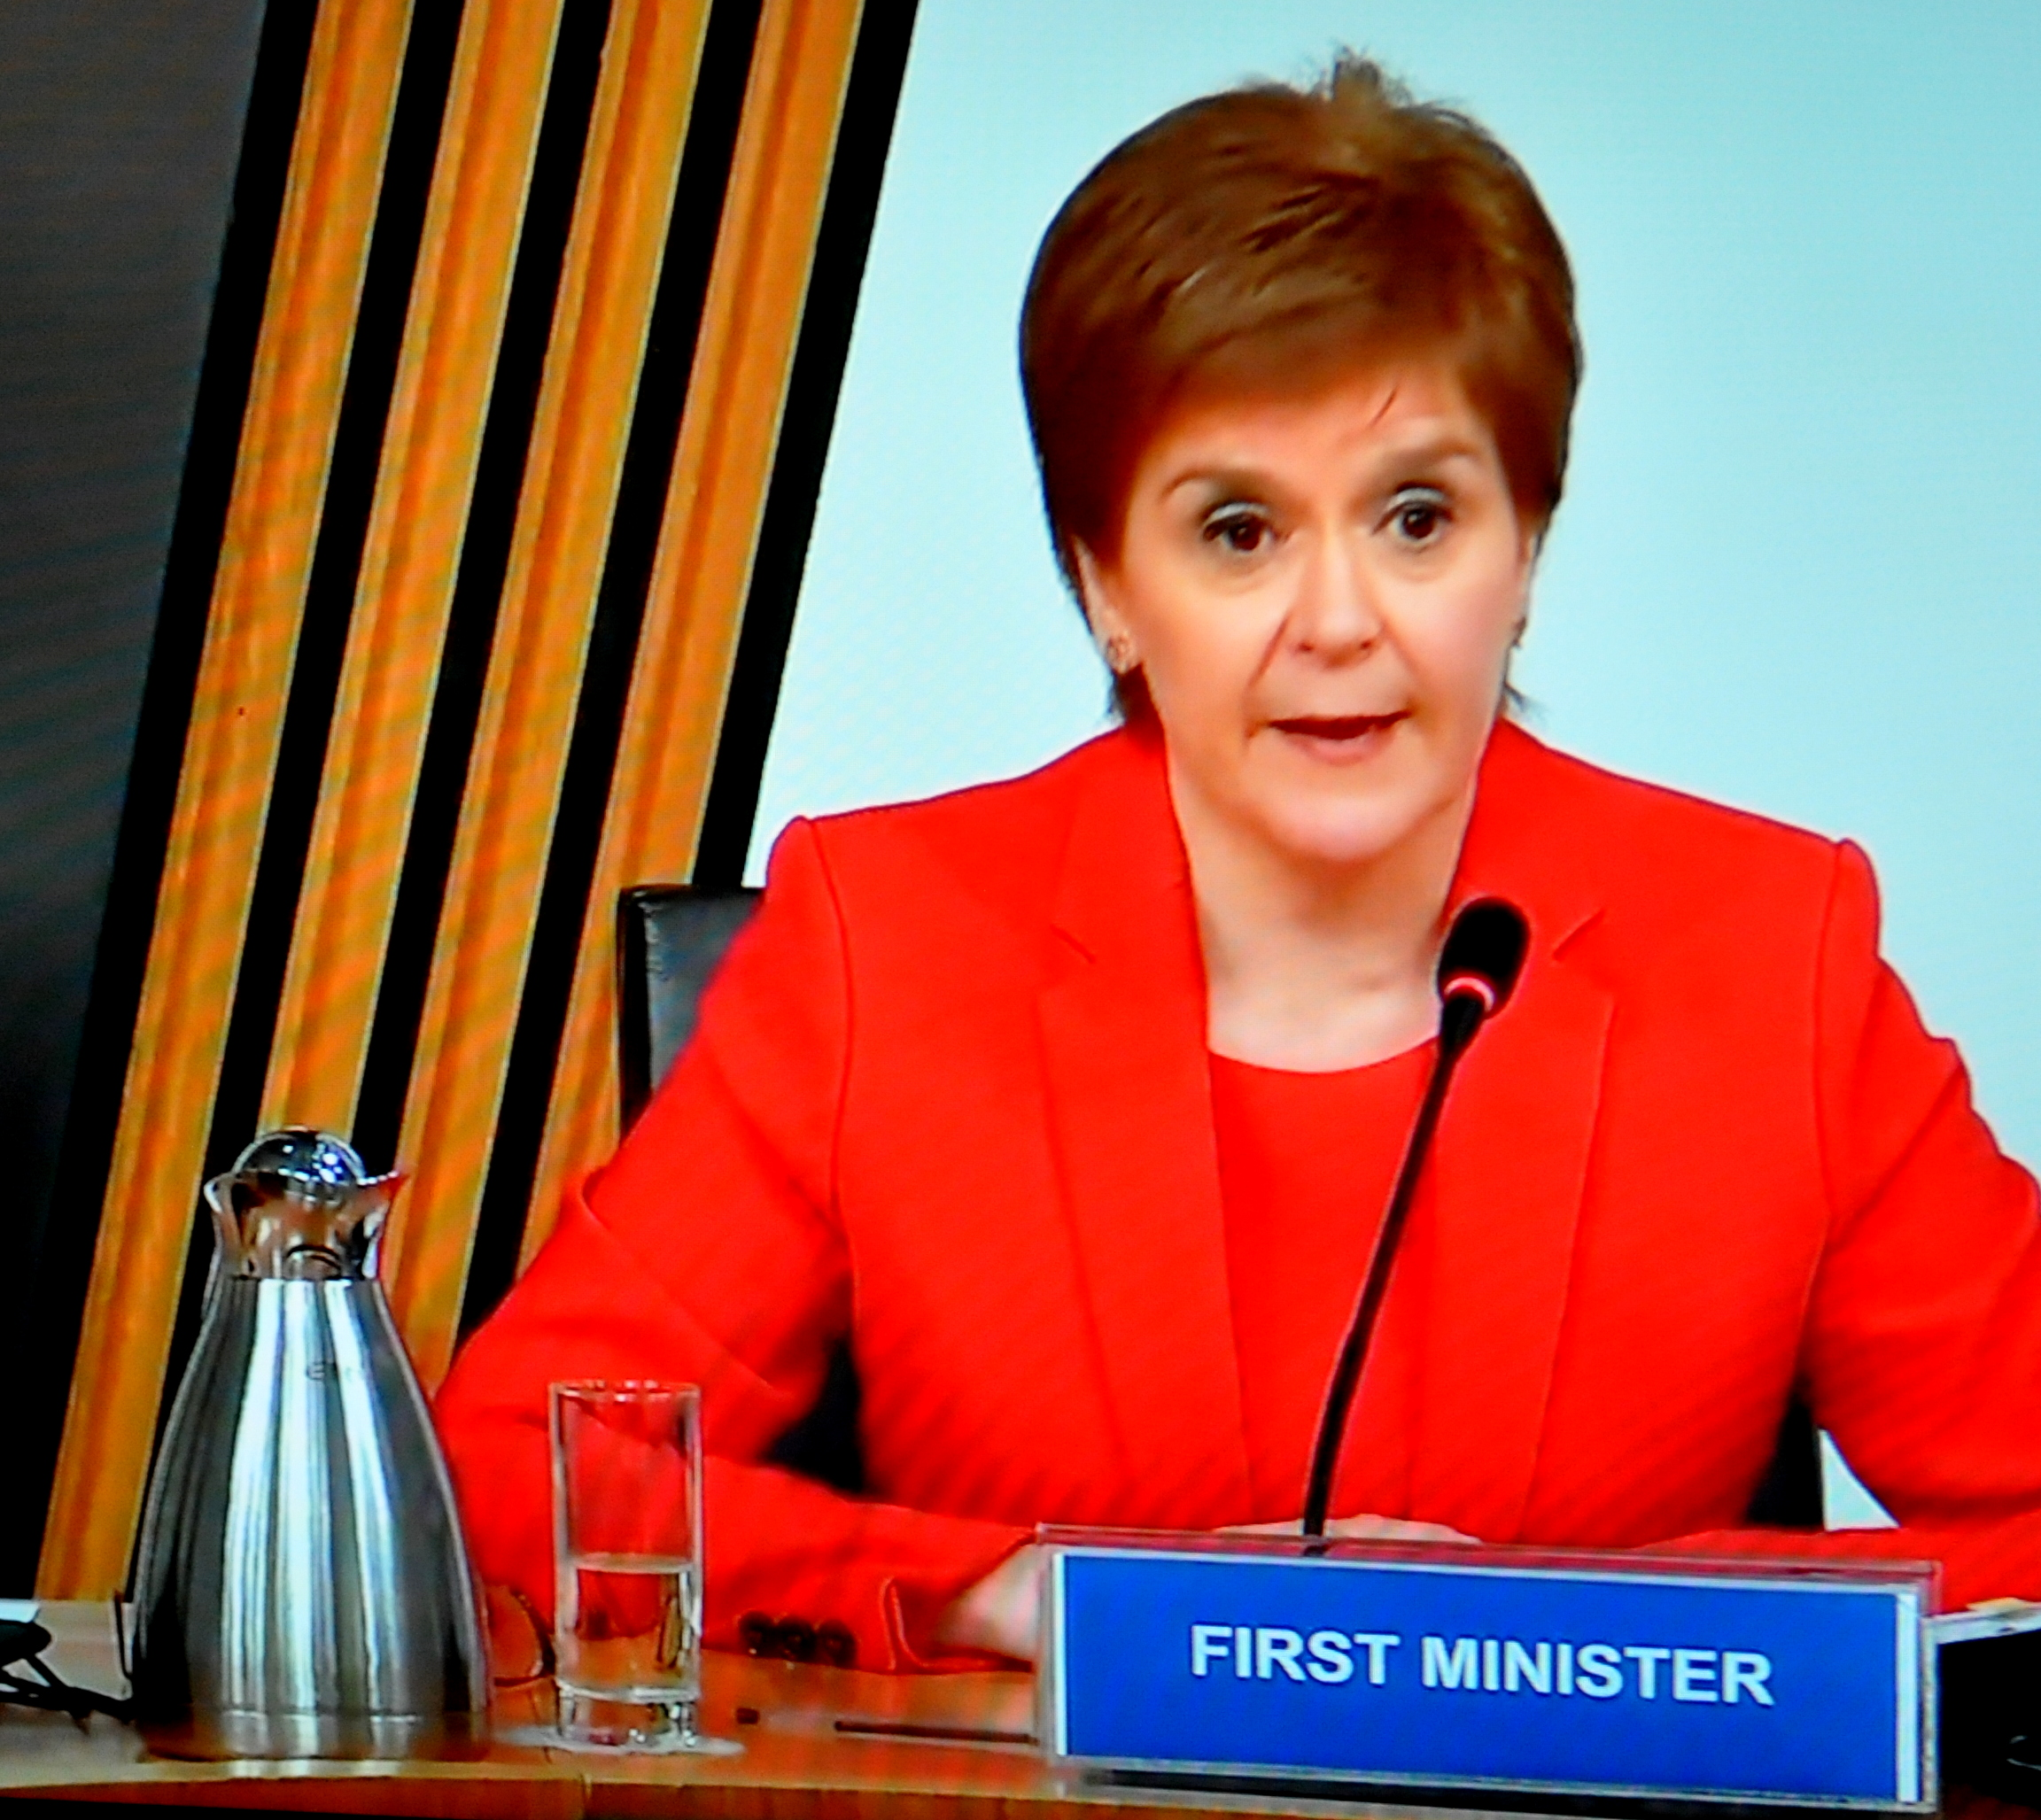 DUMBARTON MSP QUESTIONS FIRST MINISTER AT SALMOND INQUIRY